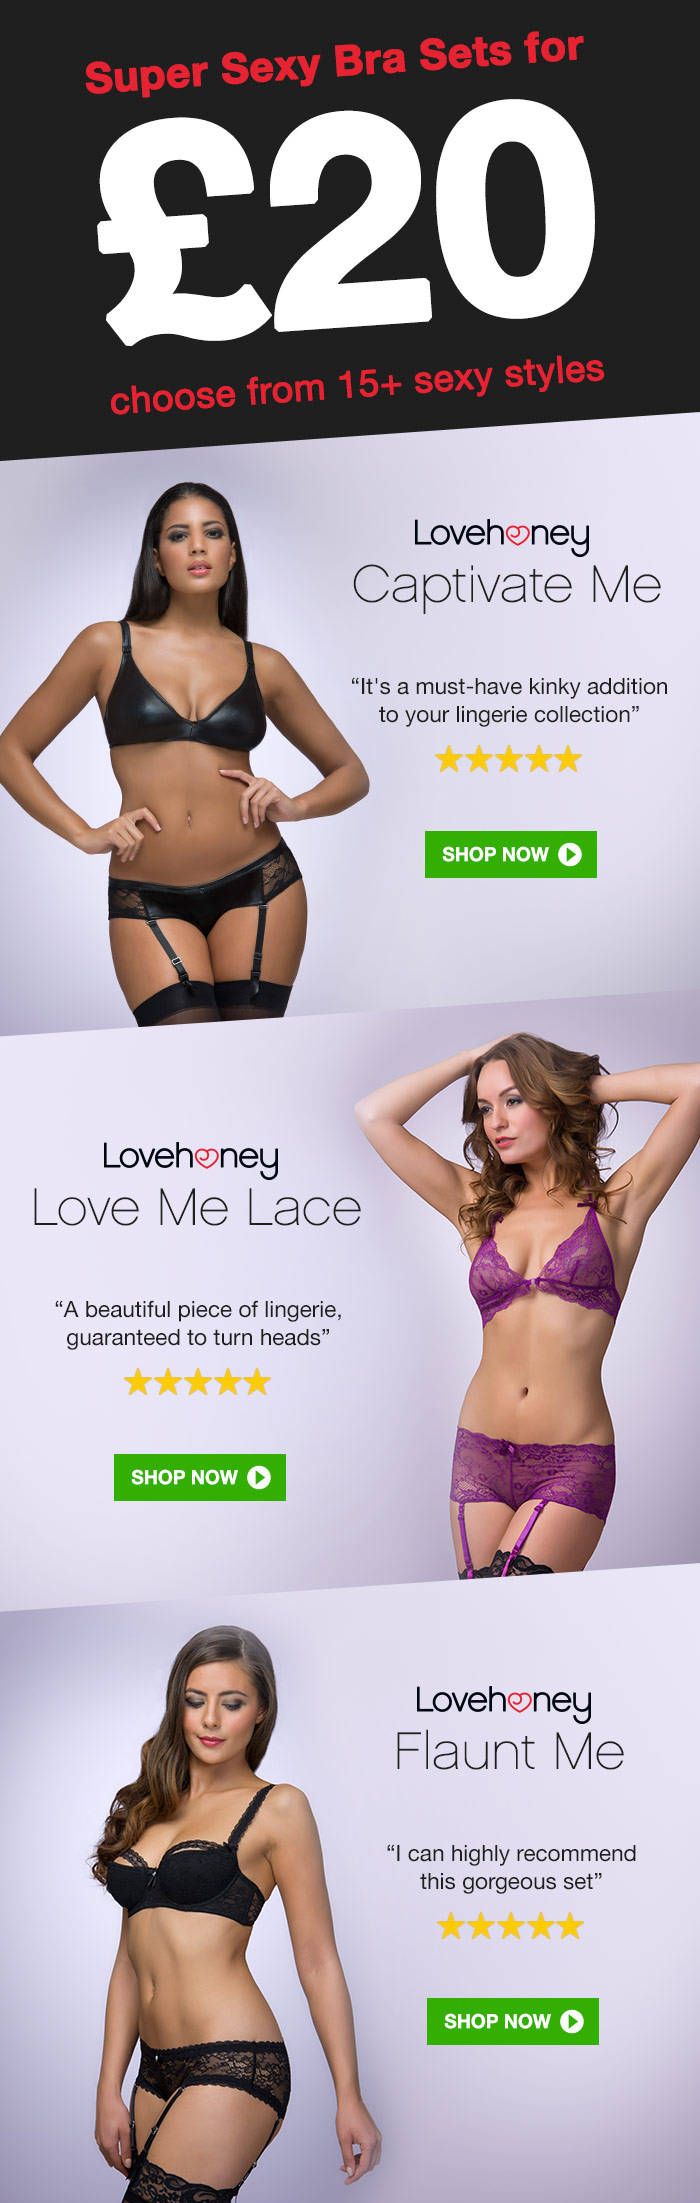 Super Bra Sets for 20 choose from 15+ sexy styles